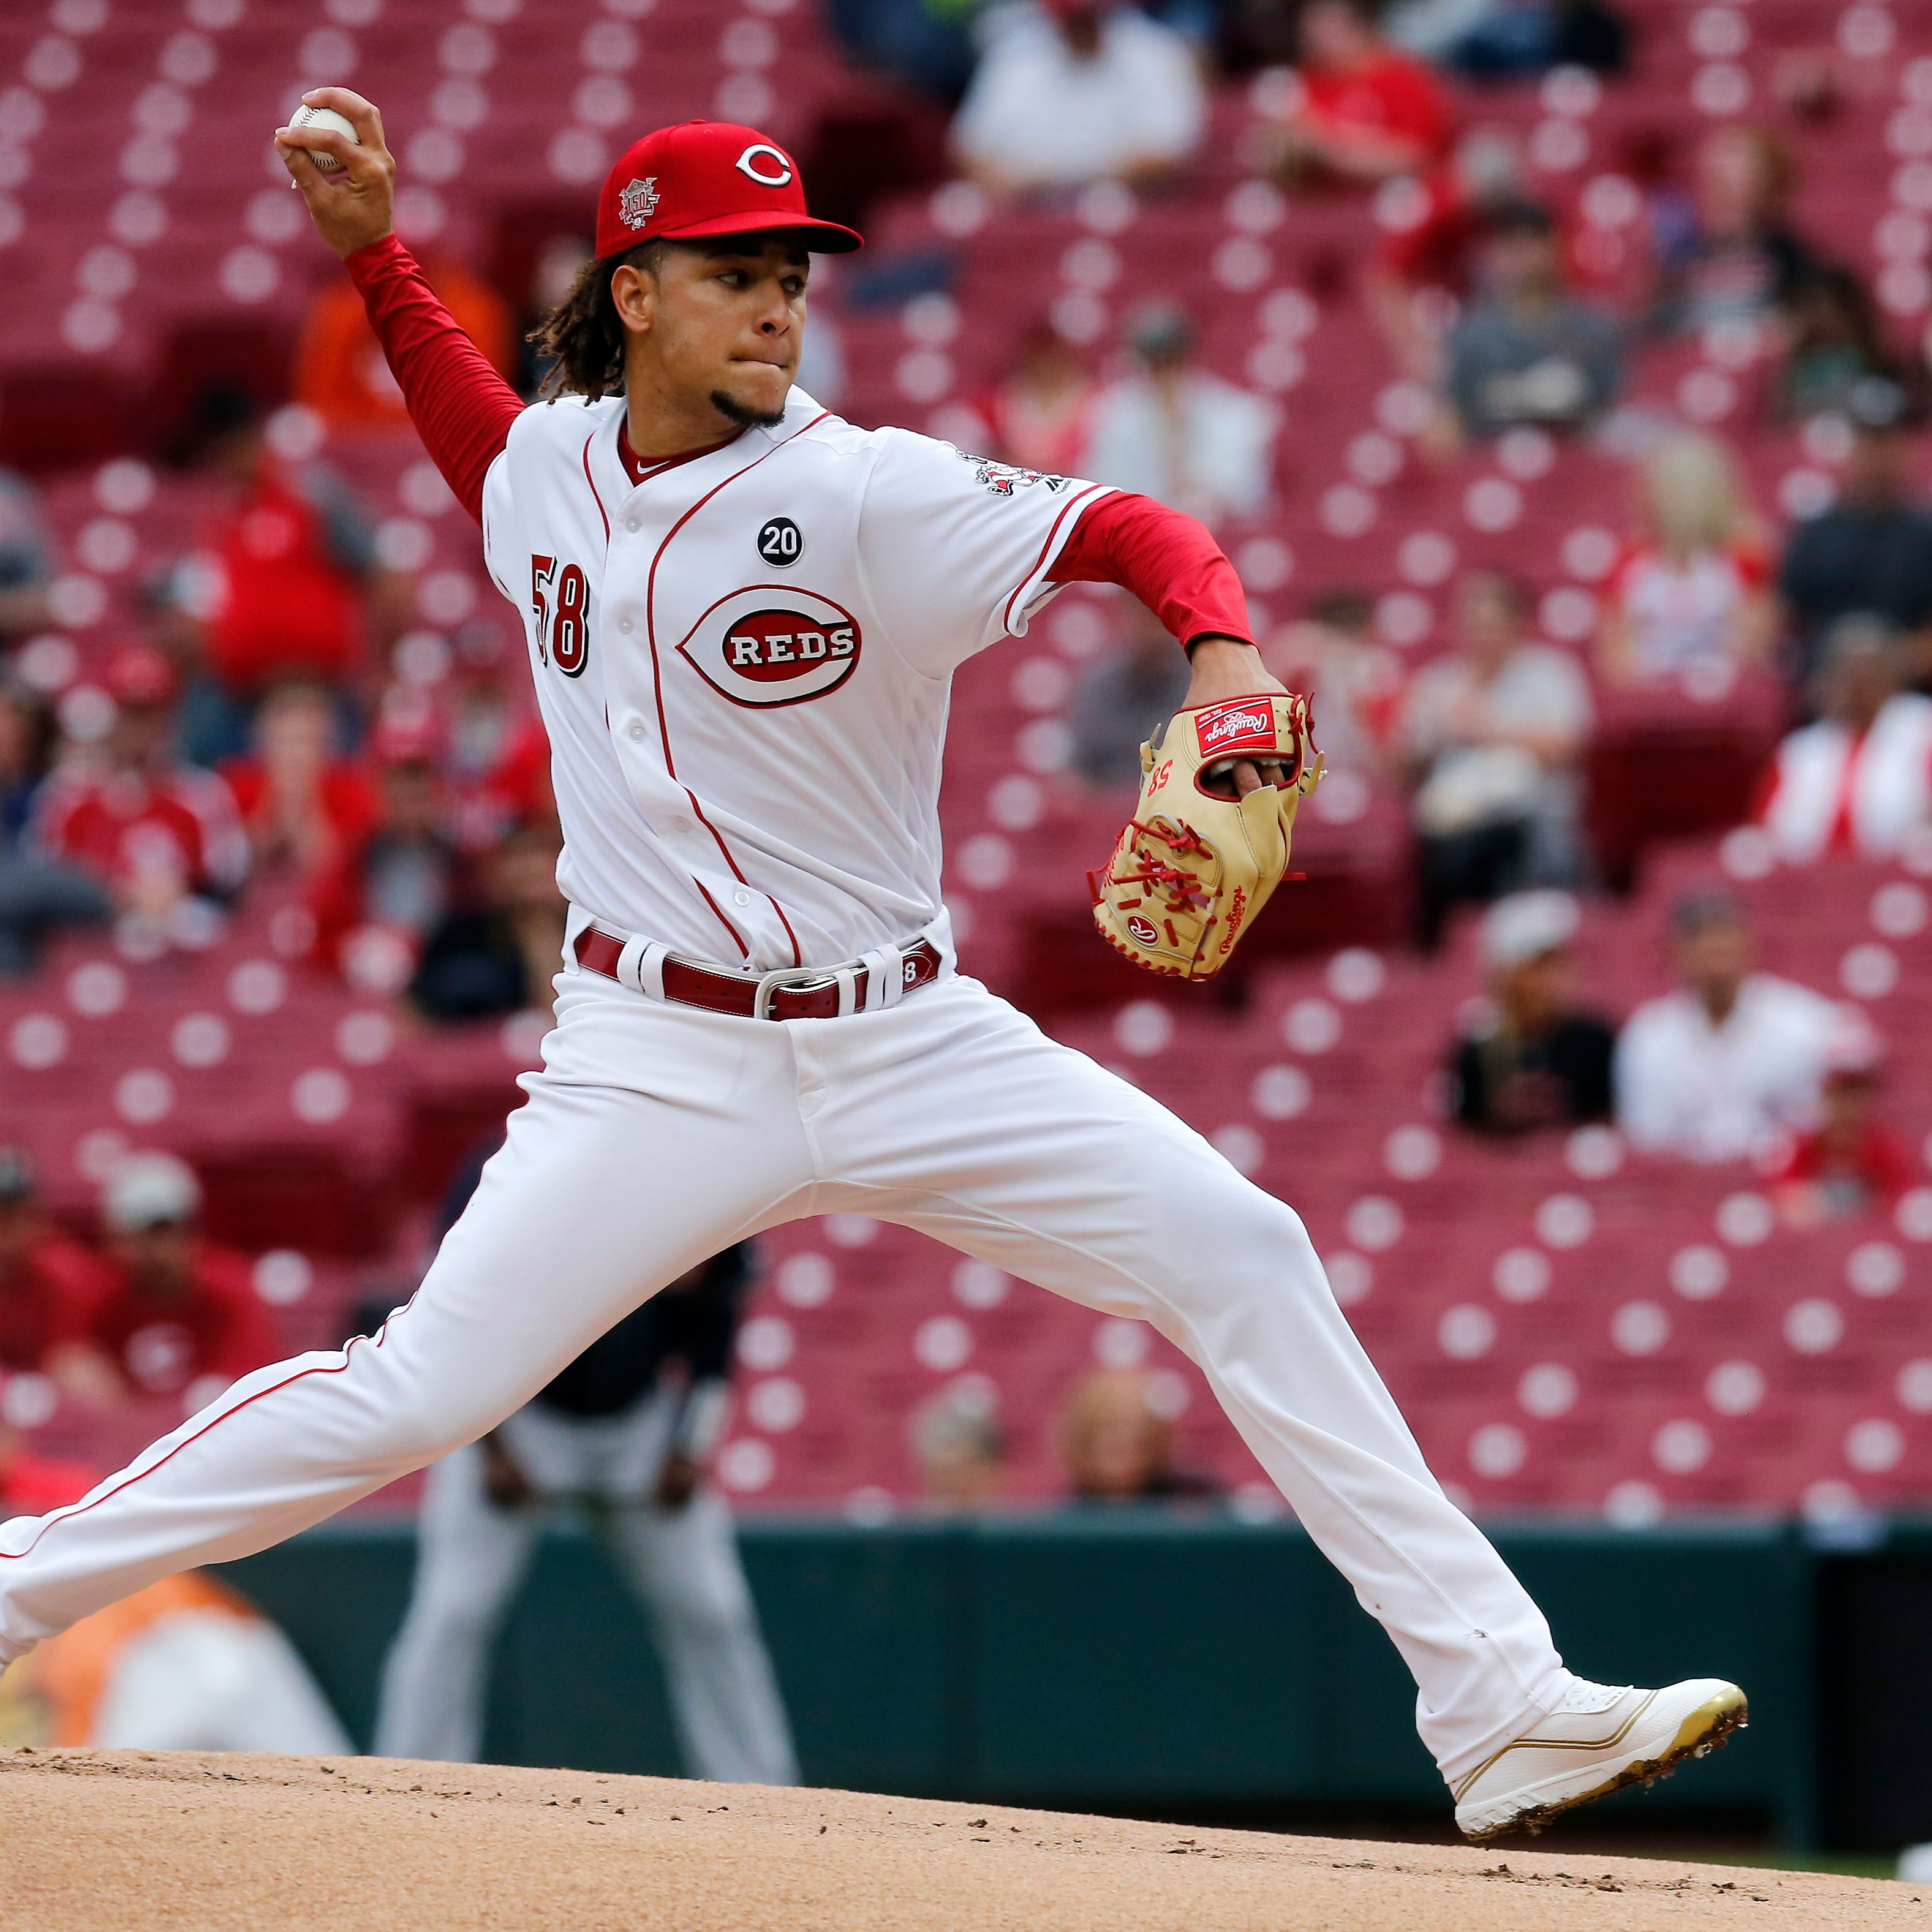 Doc's Morning Line: Cincinnati Reds still rebuilding. Who's most important to them in the long run?